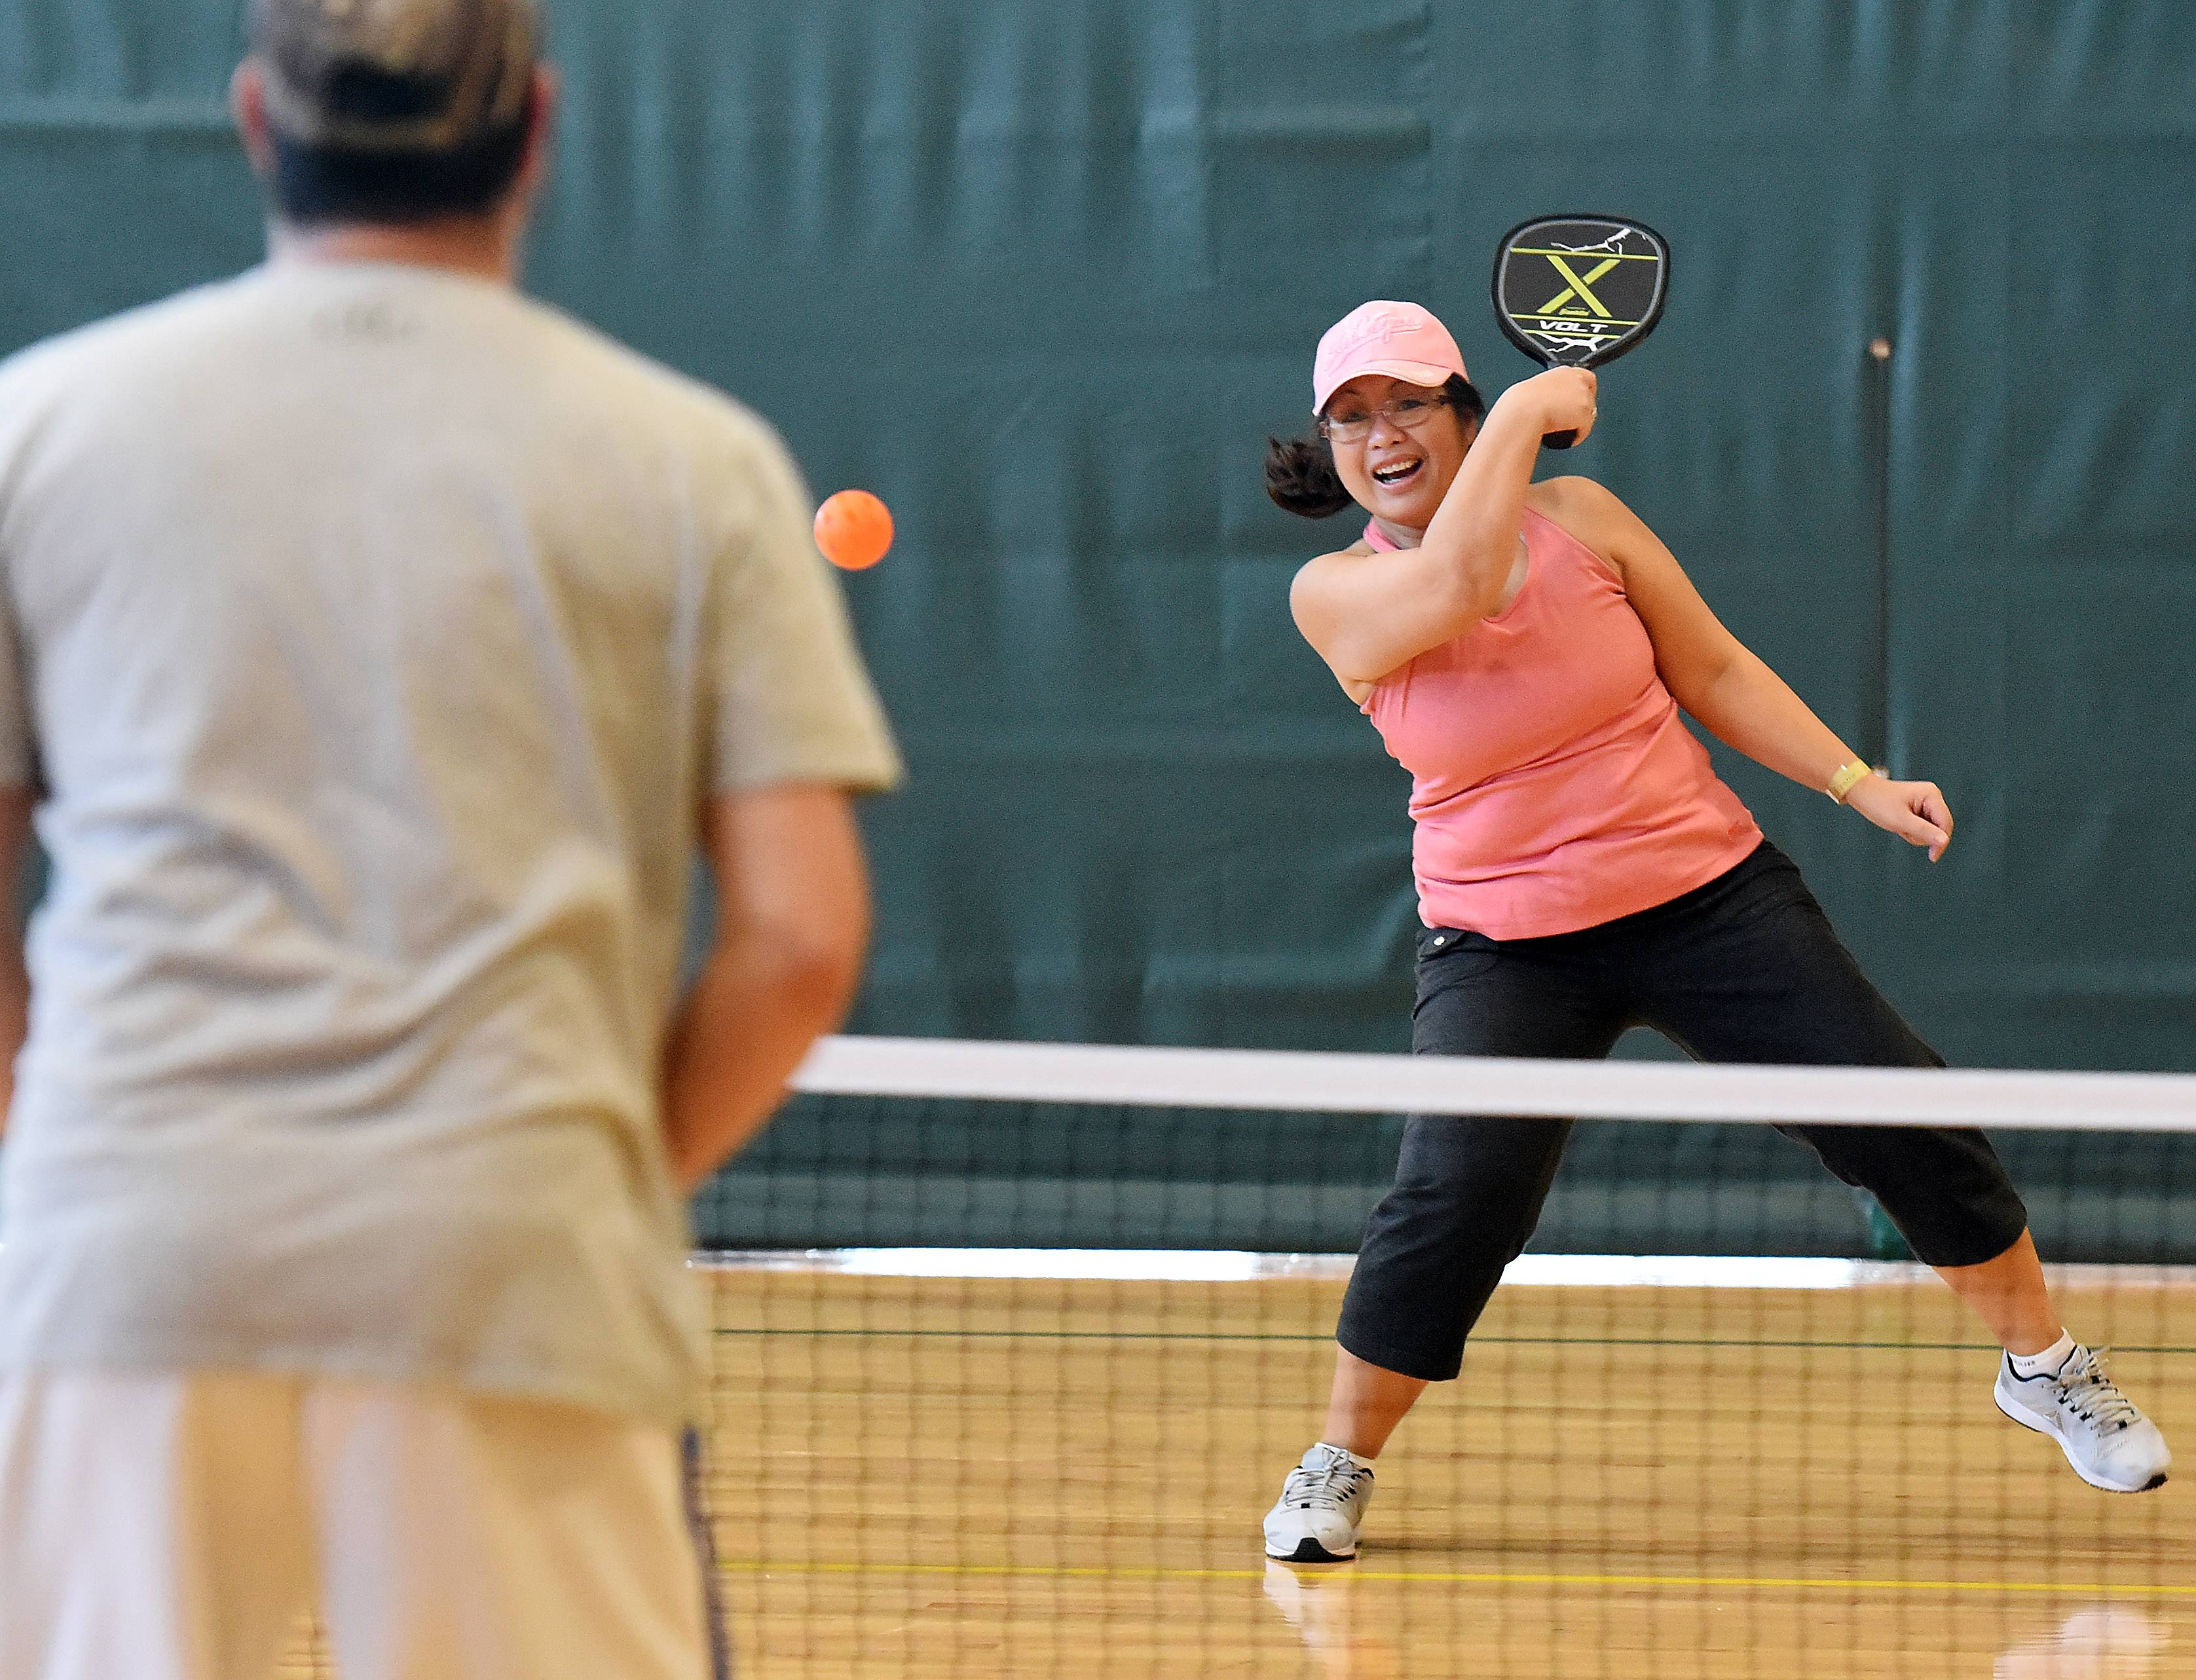 Douangchay Hedstrom of Elgin has been encouraging Lao seniors to check out pickleball at the Centre of Elgin.